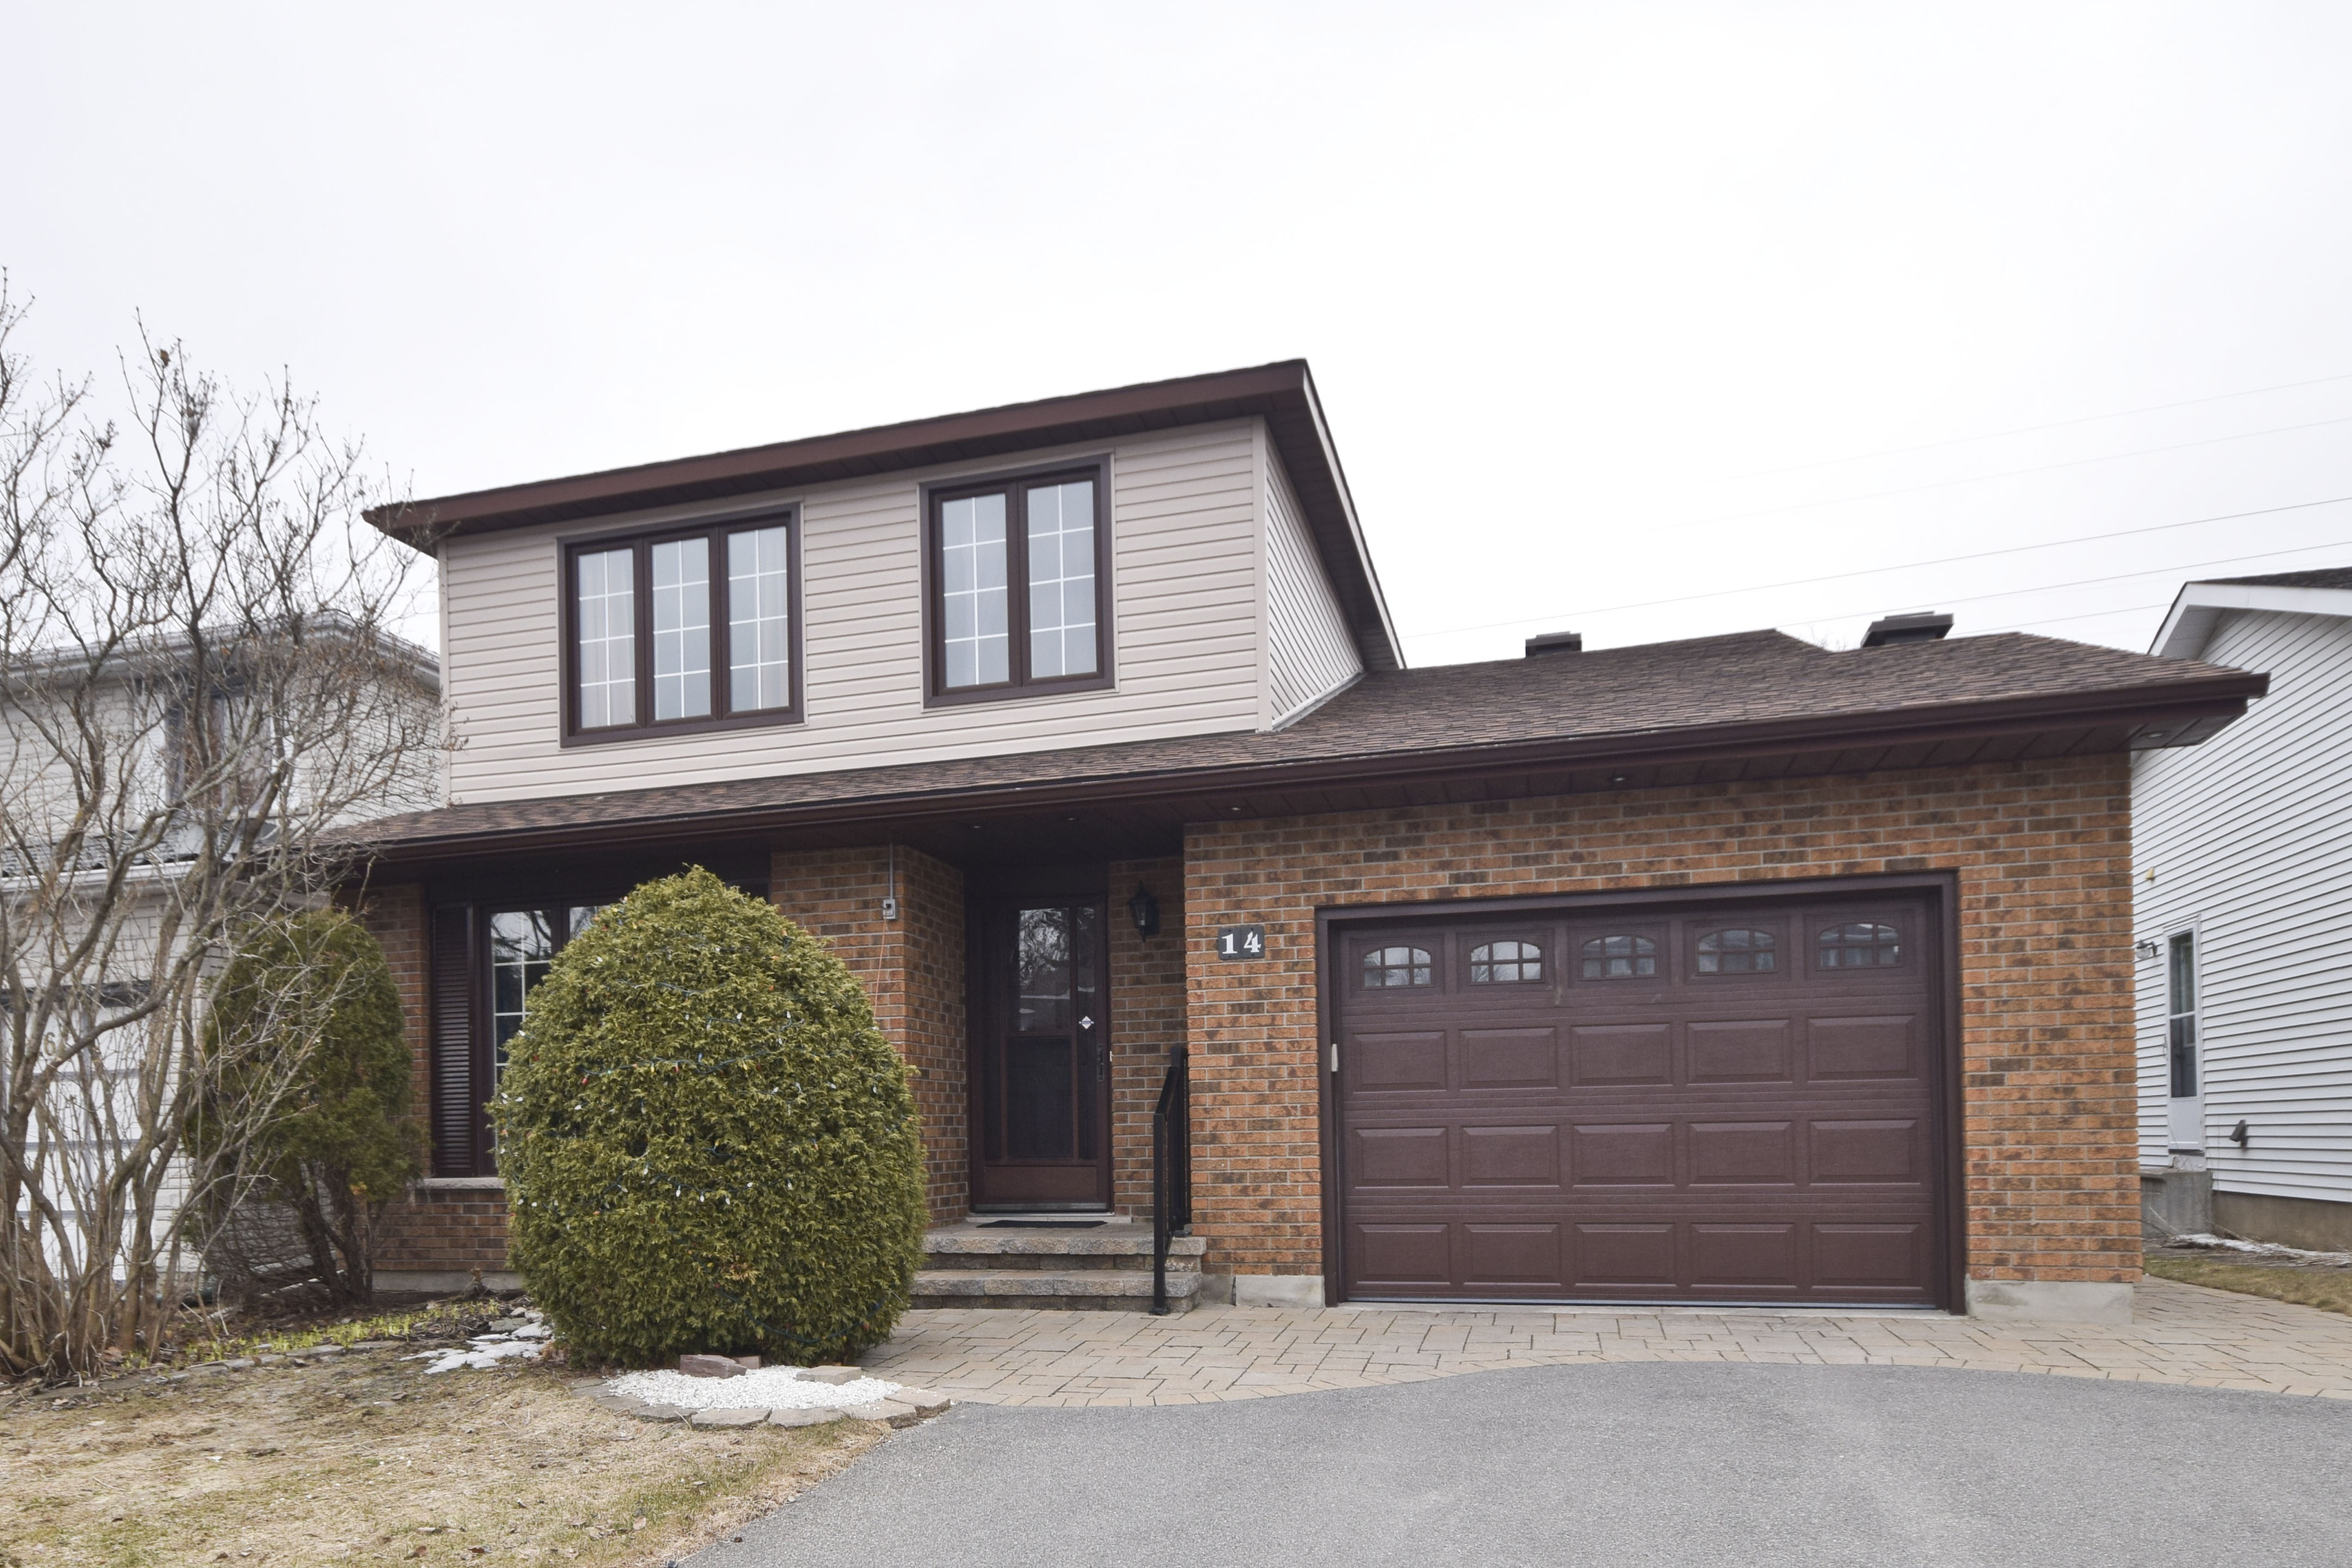 14 Beechcliffe St - Updated and Well Maintained Detached Home in popular Craig Henry area!